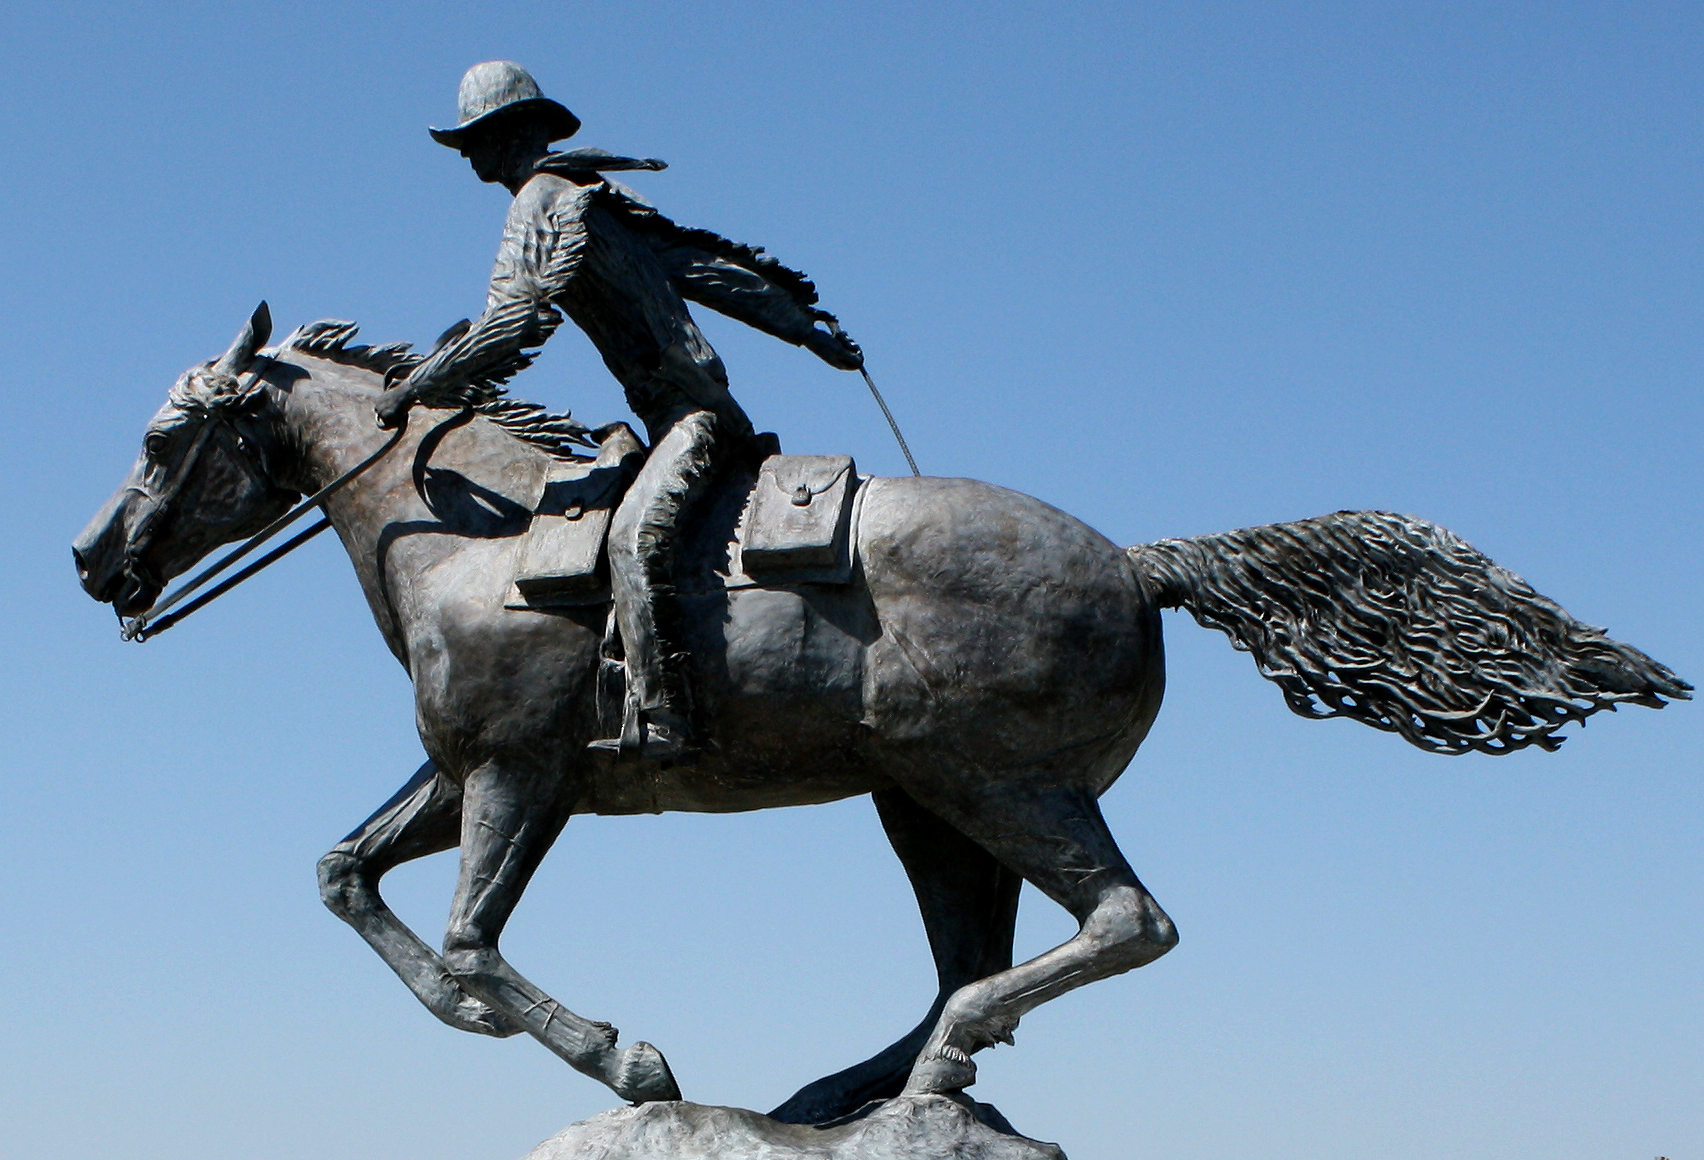 Photo: Pony Express Statue At Colorado Welcome Center Julesburg (Flickr)